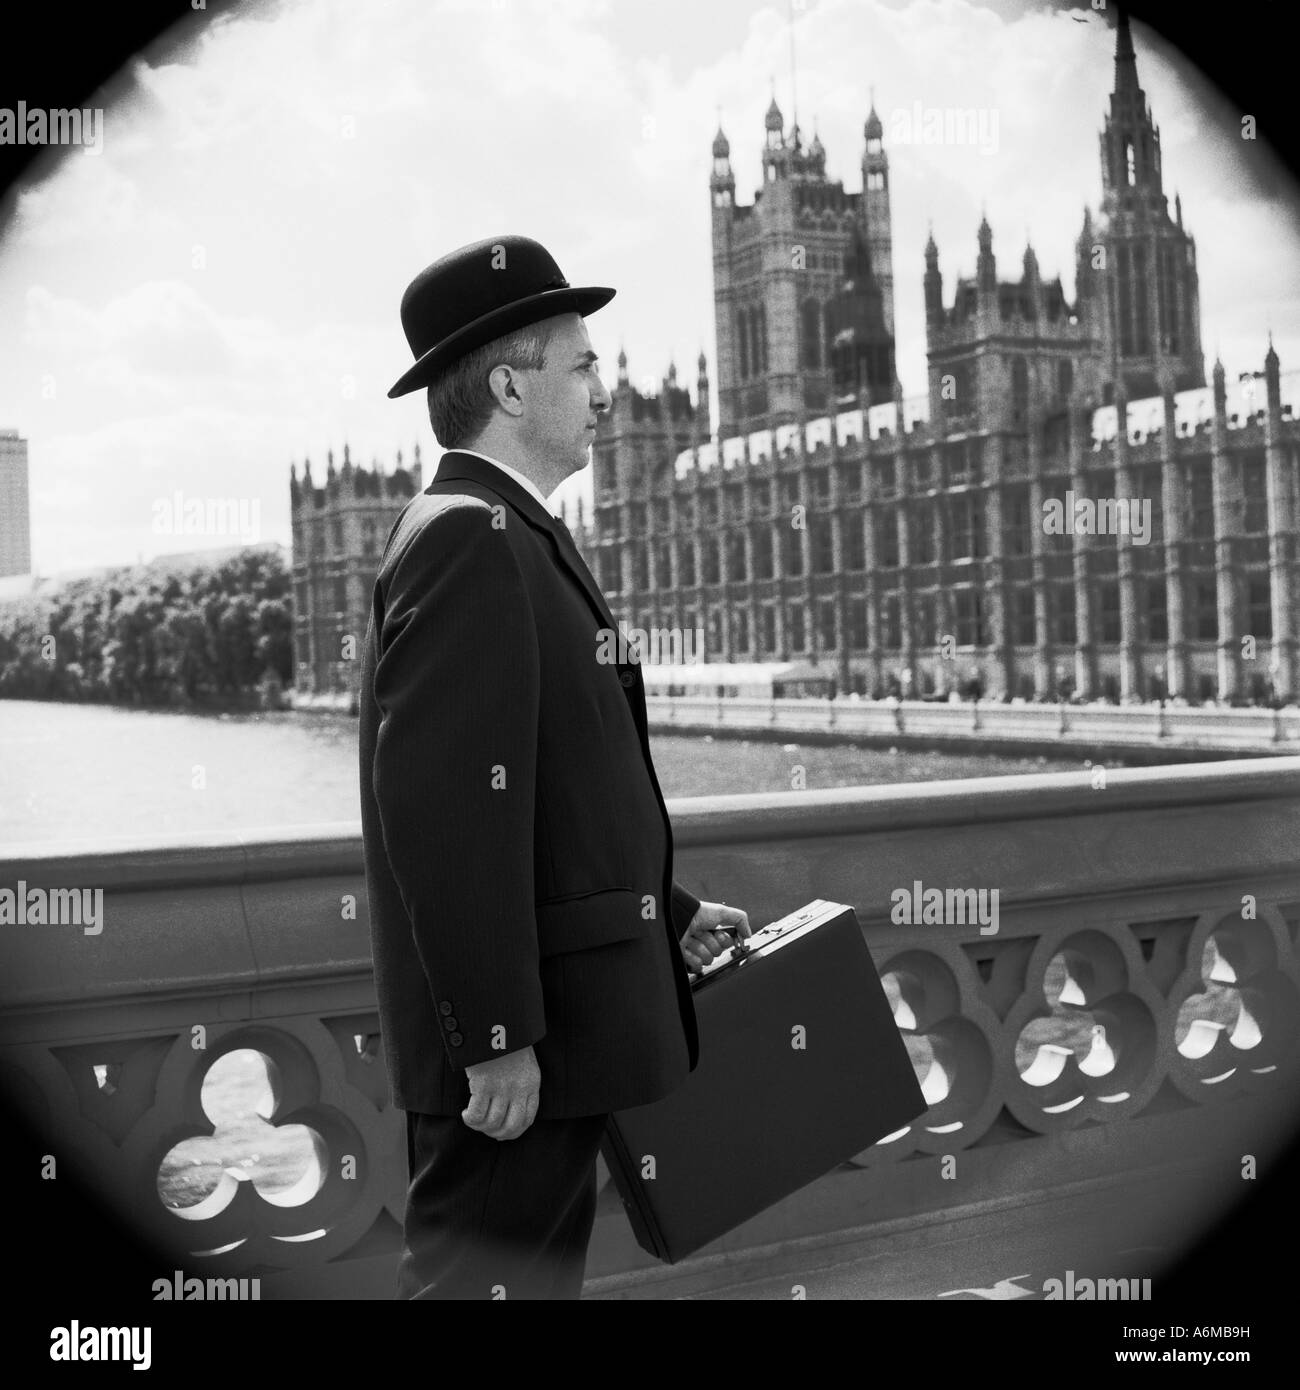 Englishman in bowler hat on Westminster bridge with Houses of Parliament - Stock Image